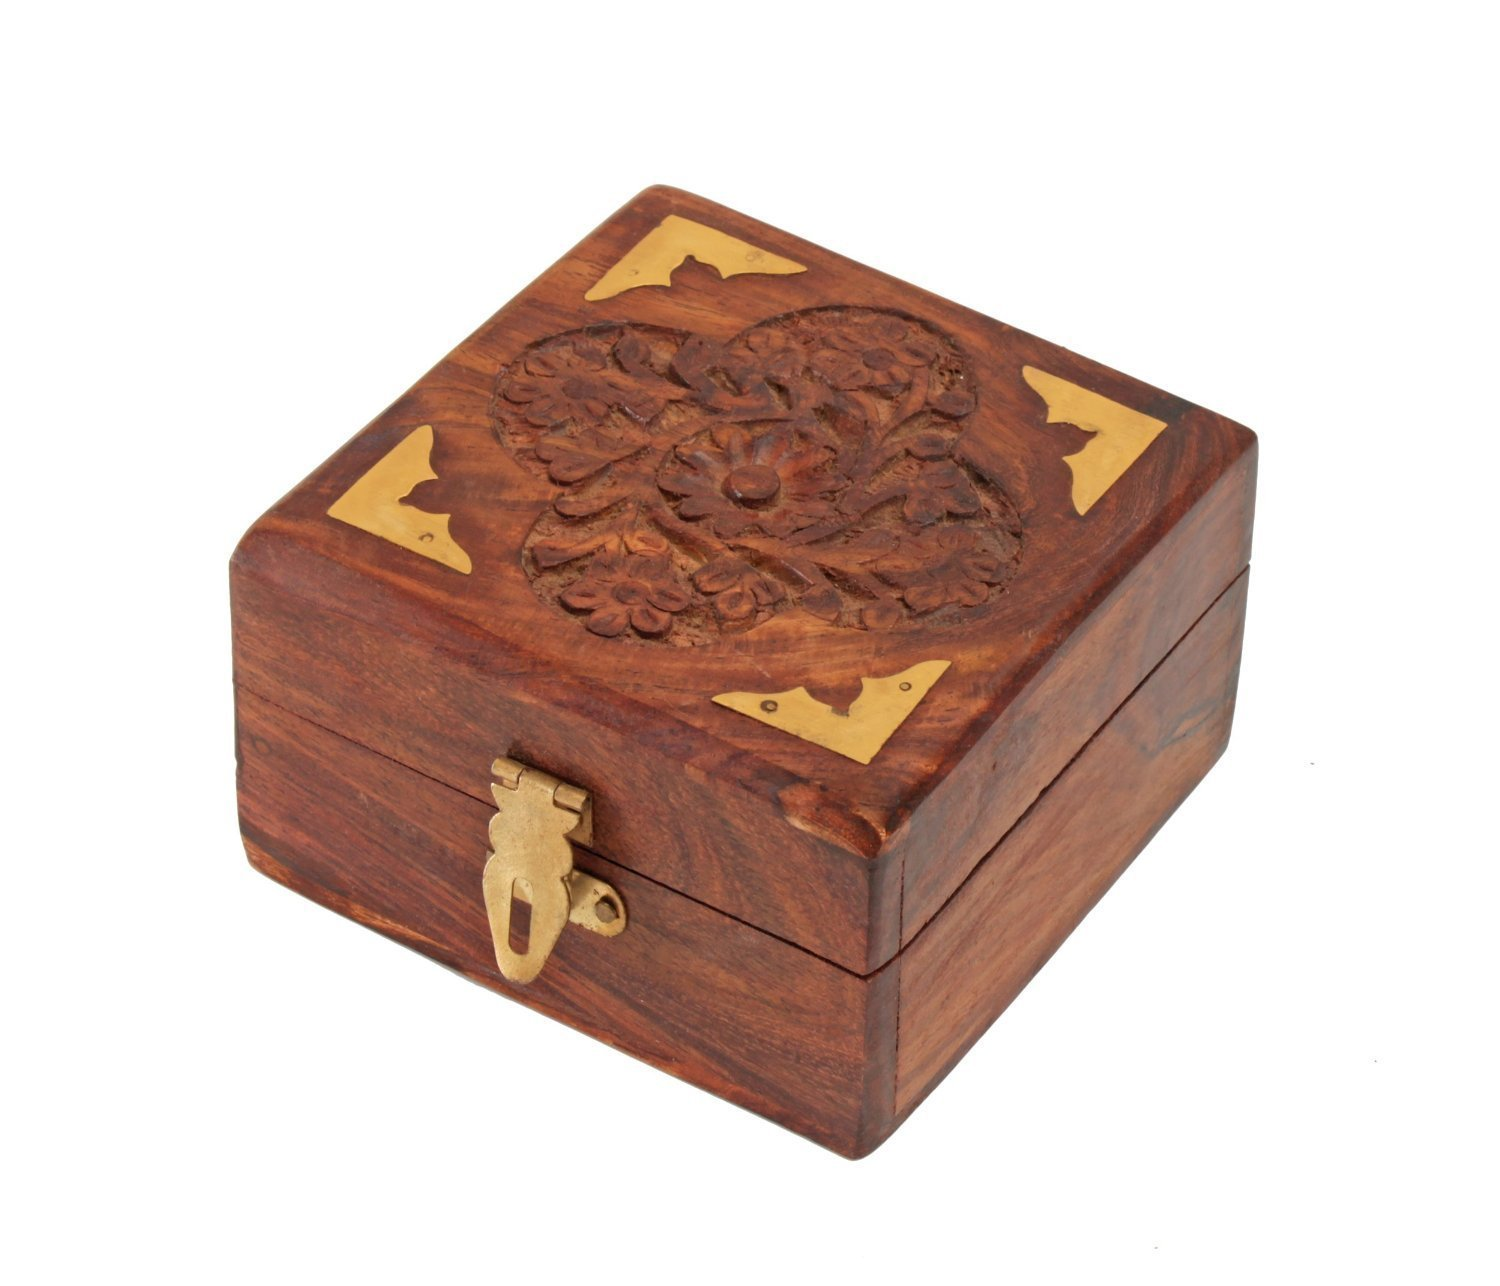 Fine Rosewood Jewelry Trinket Box Keepsake Organizer Handcrafted with Floral Carvings, 4 x 4 inches